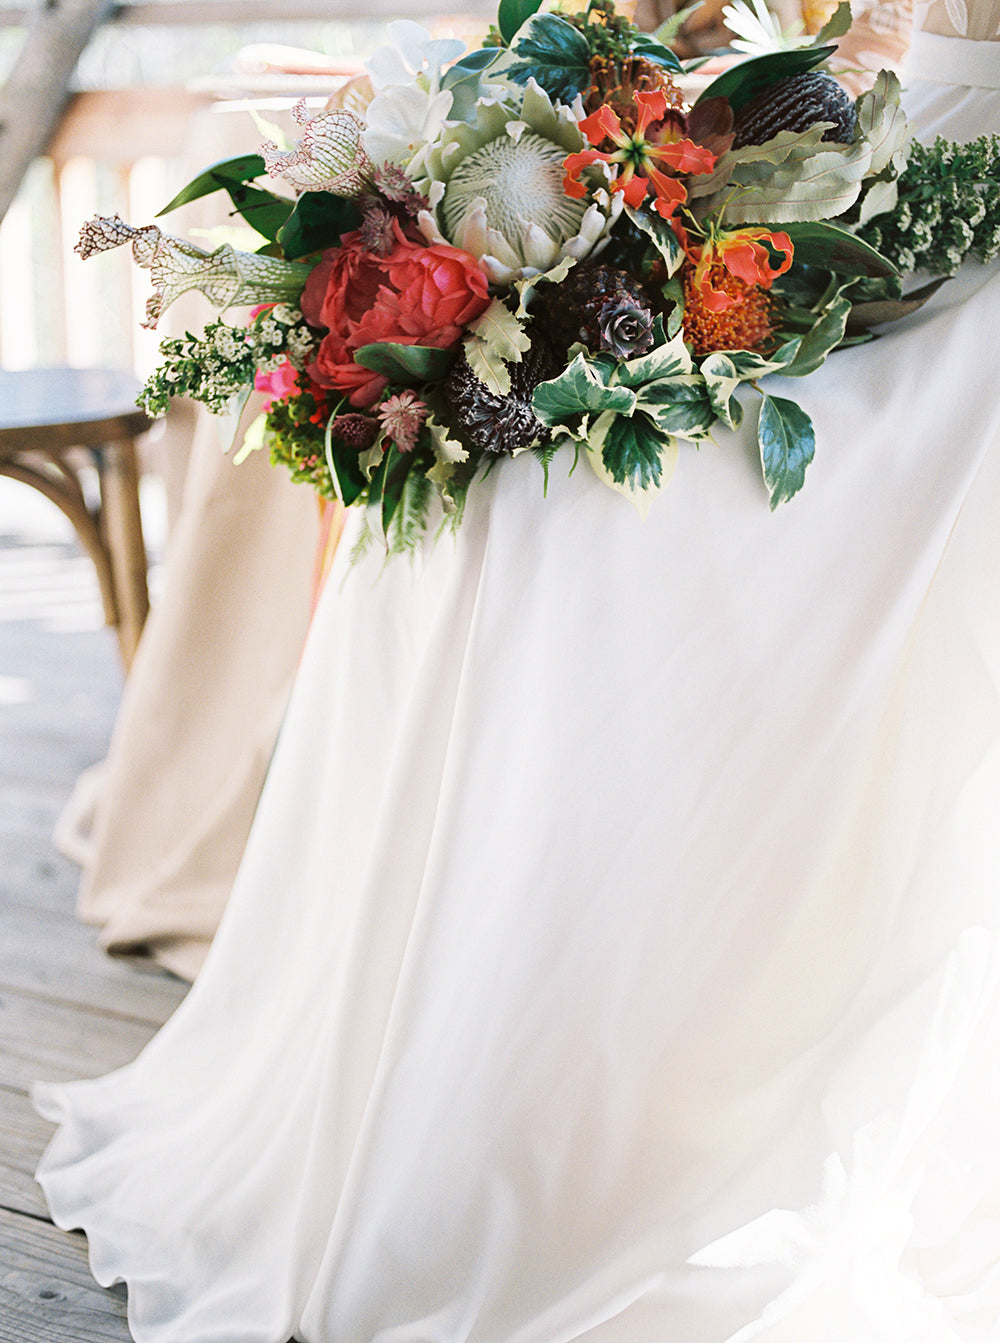 firelight-camps-wedding-inspiration-stacy-k-floral-8-1